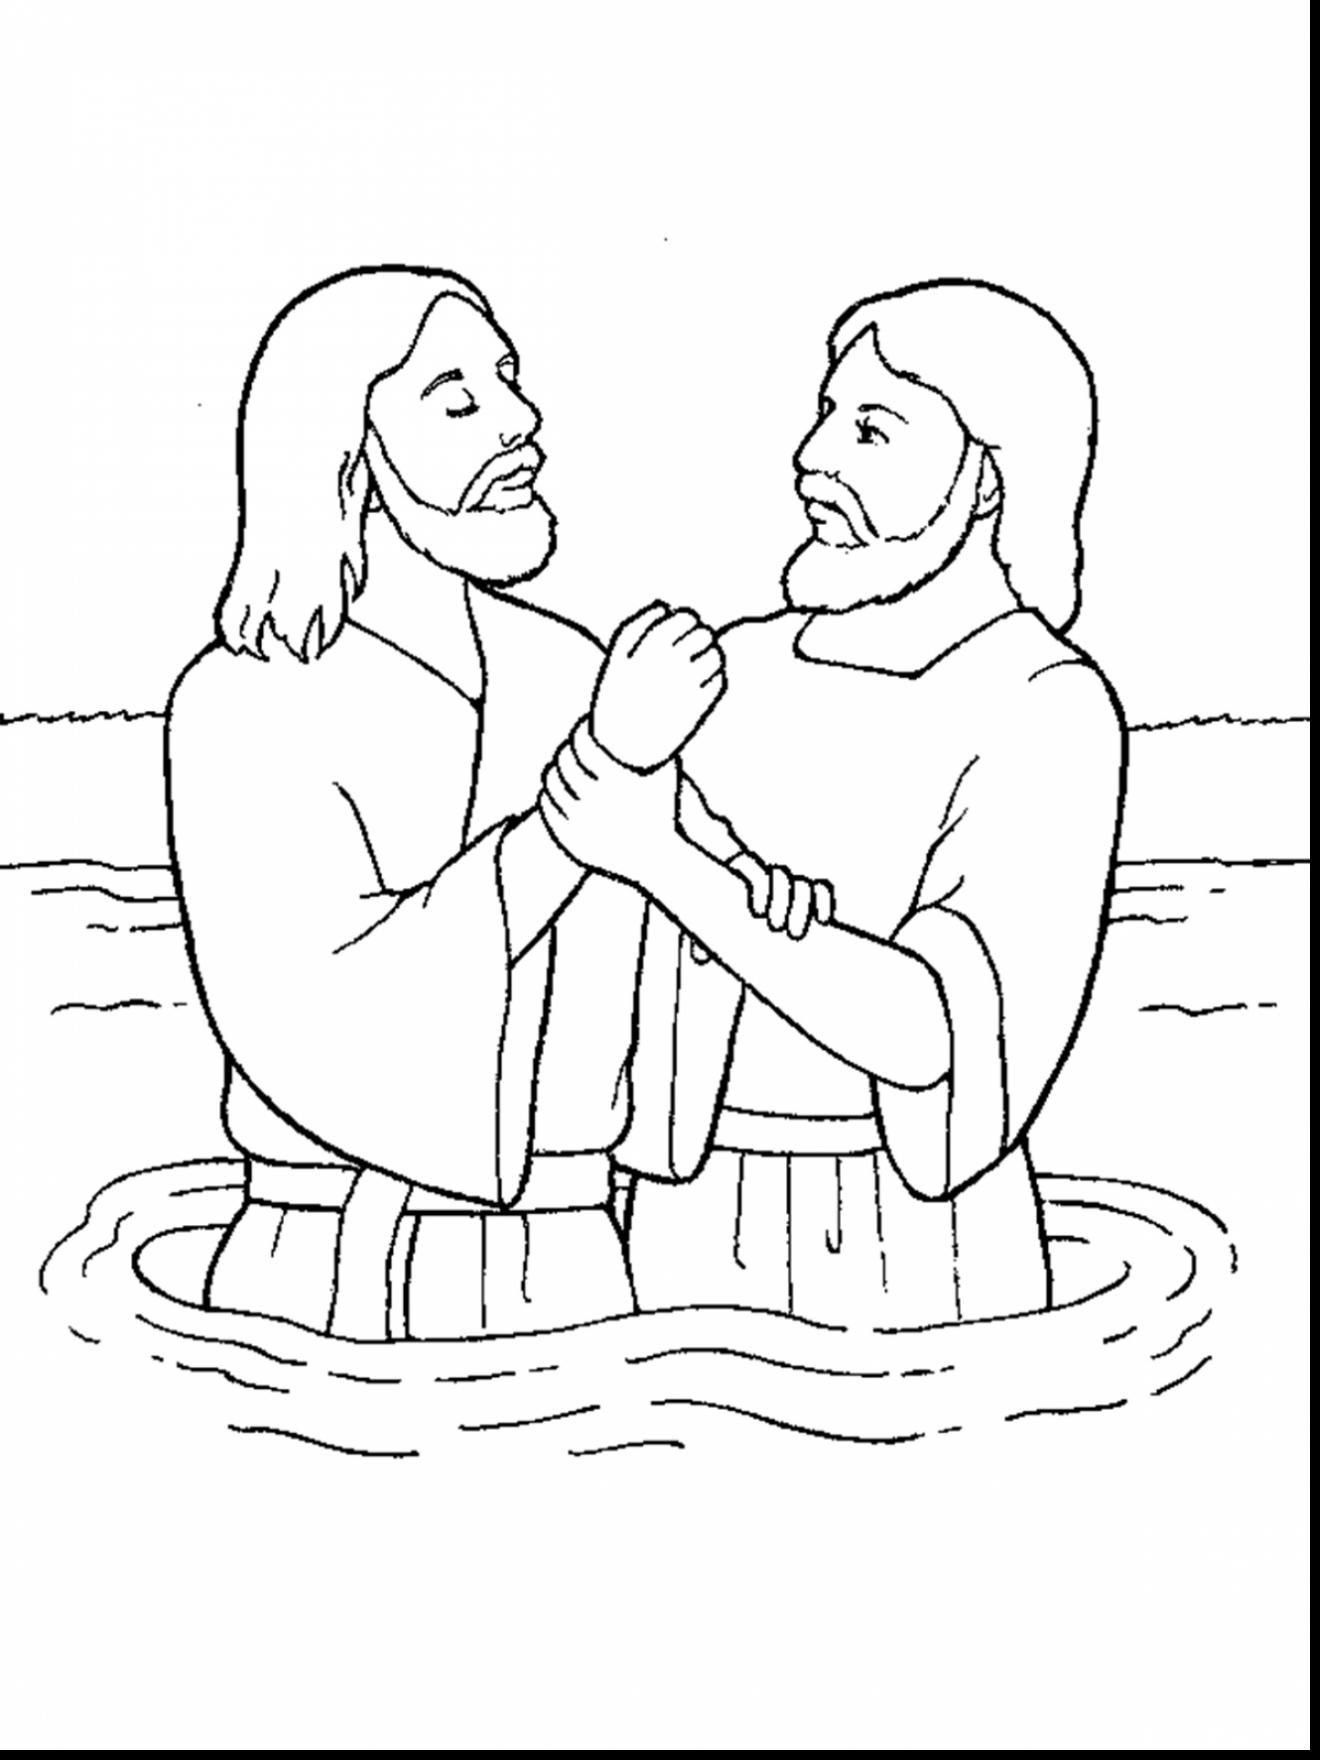 Jesus Coloring Pages For Kids Coloring Pages Coloring Book Stunning Jesussm Ideas Jesus In 2020 Jesus Coloring Pages Lds Coloring Pages Bible Coloring